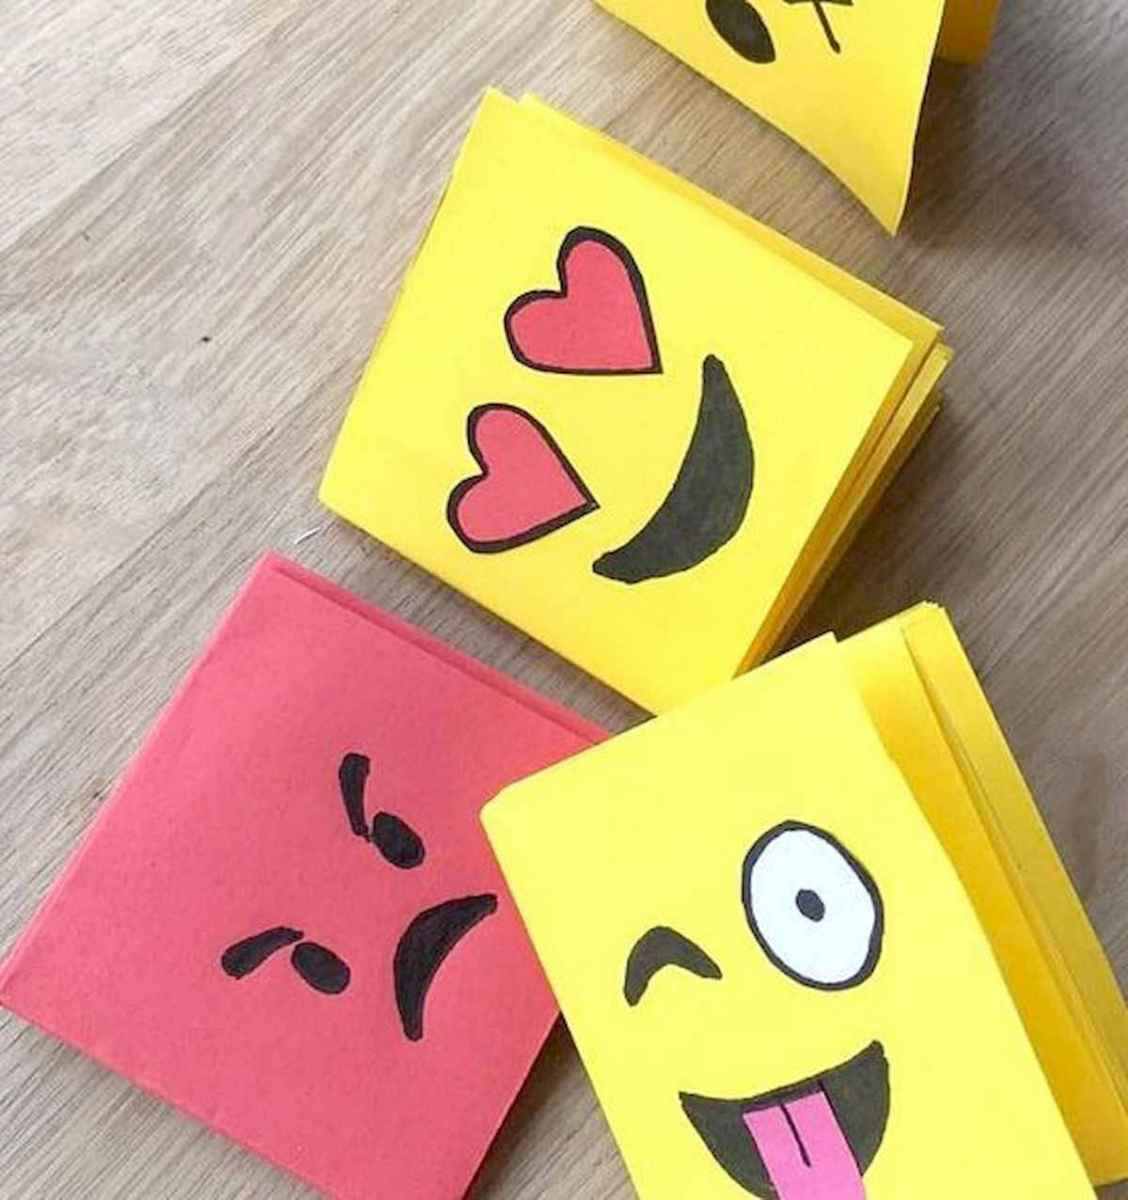 60 Fantastic DIY Projects Ideas For Kids (8)